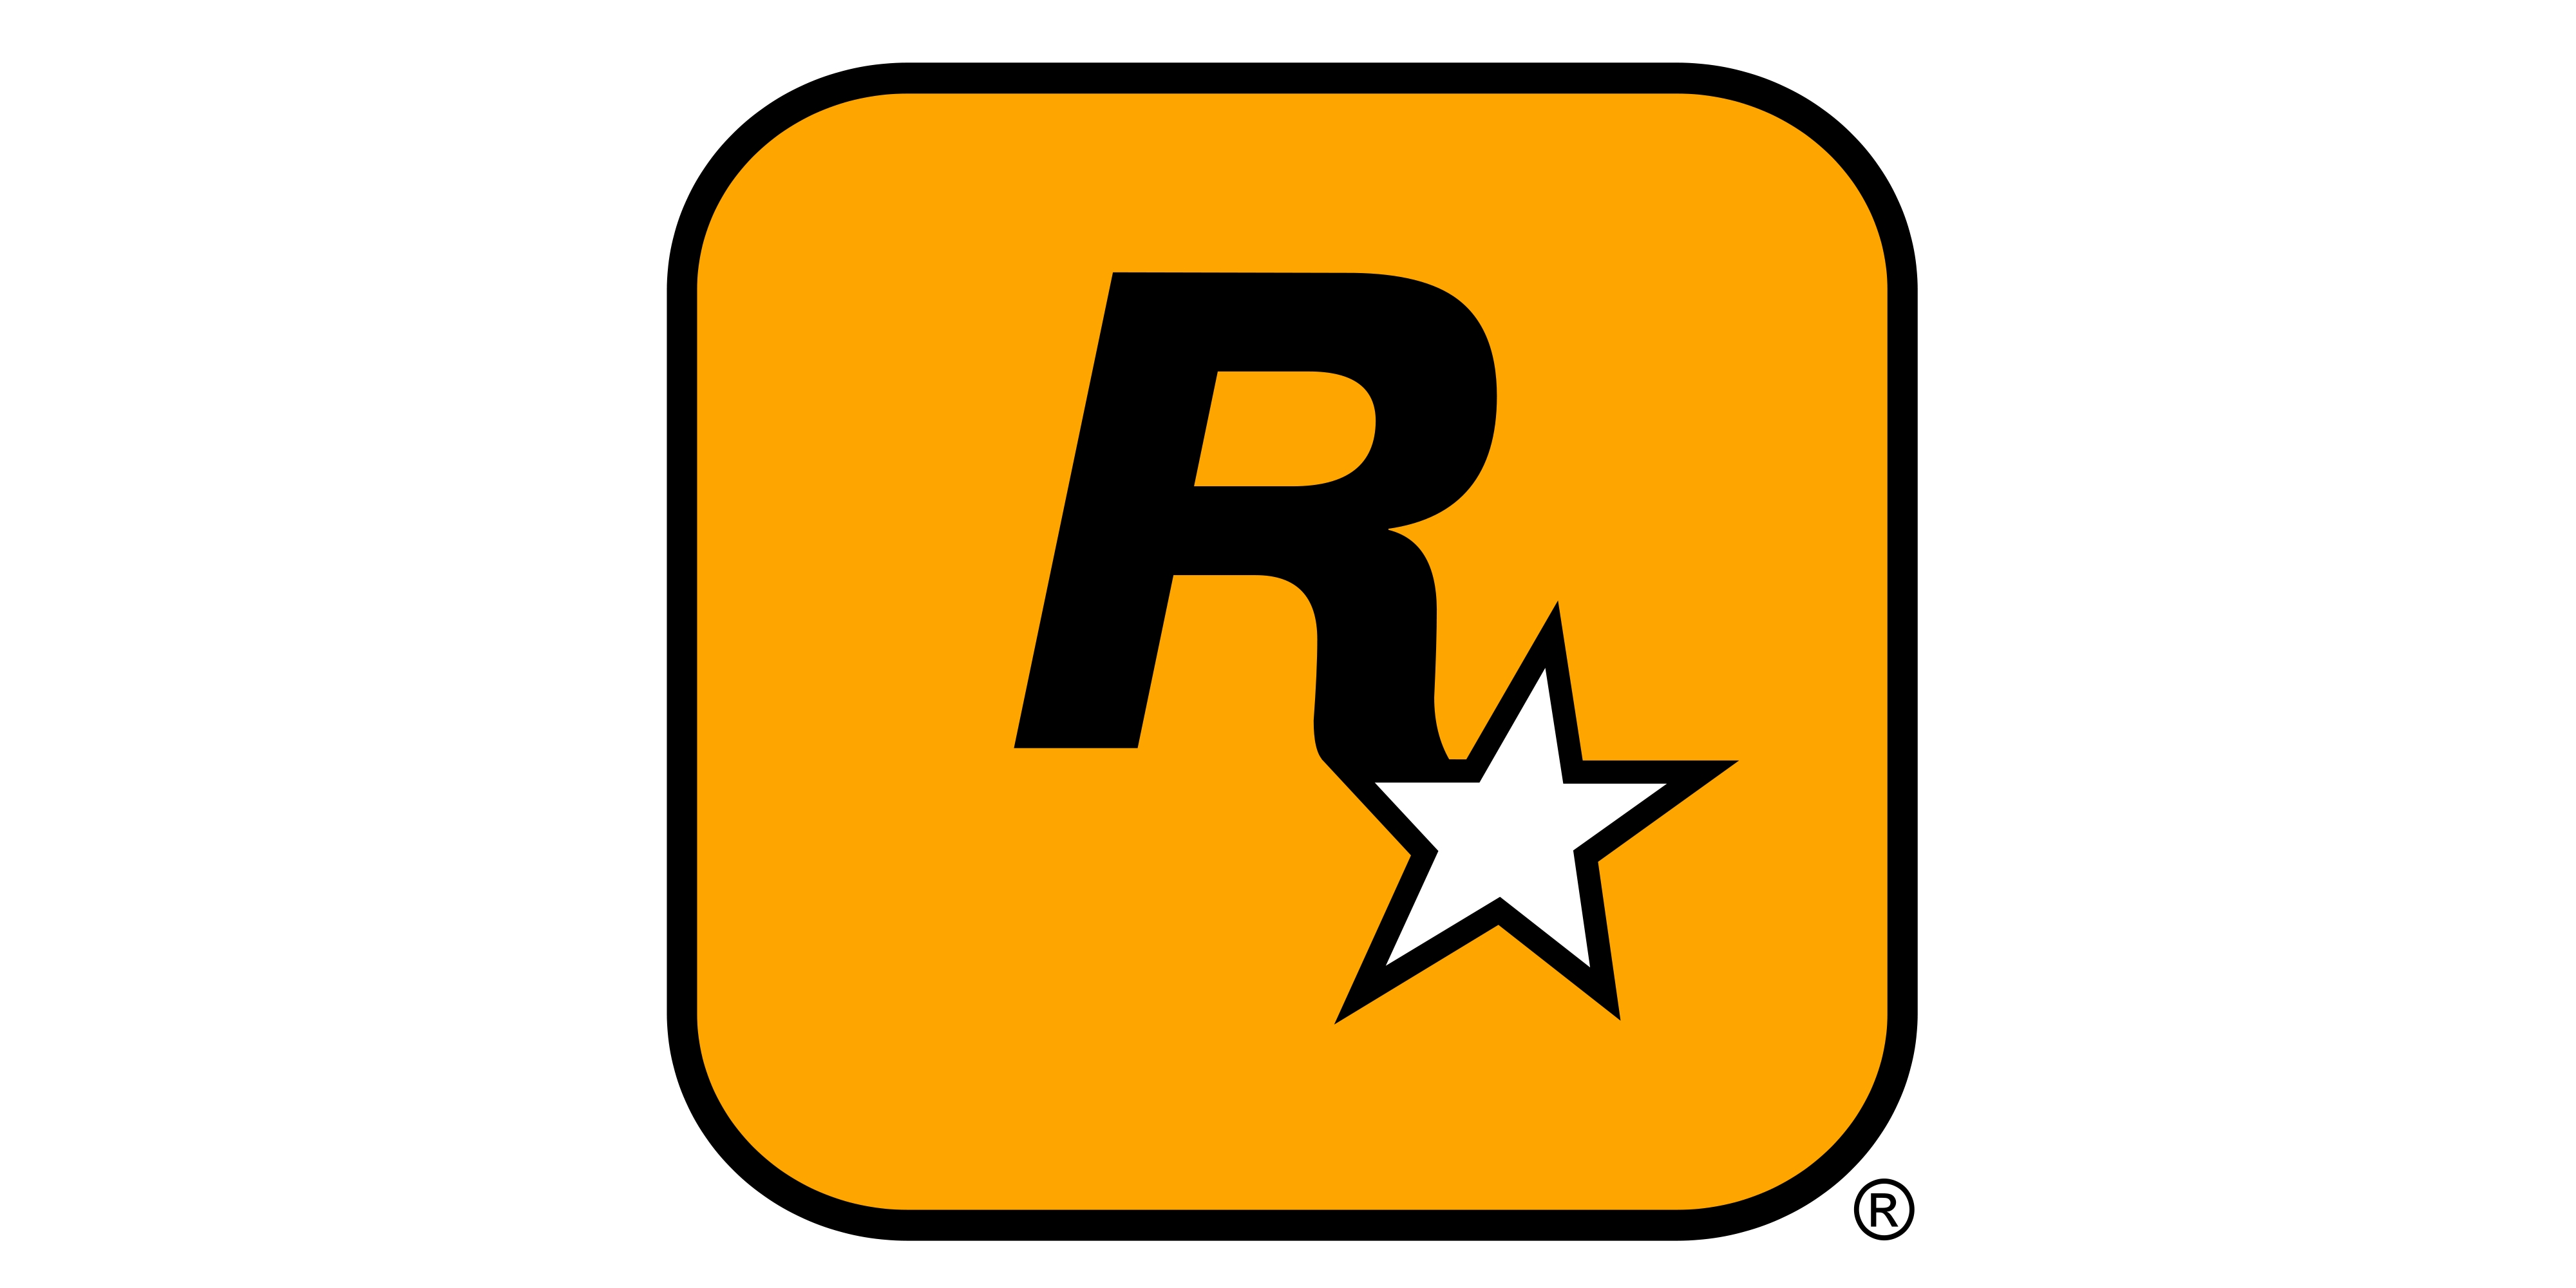 There's more than one Rockstar